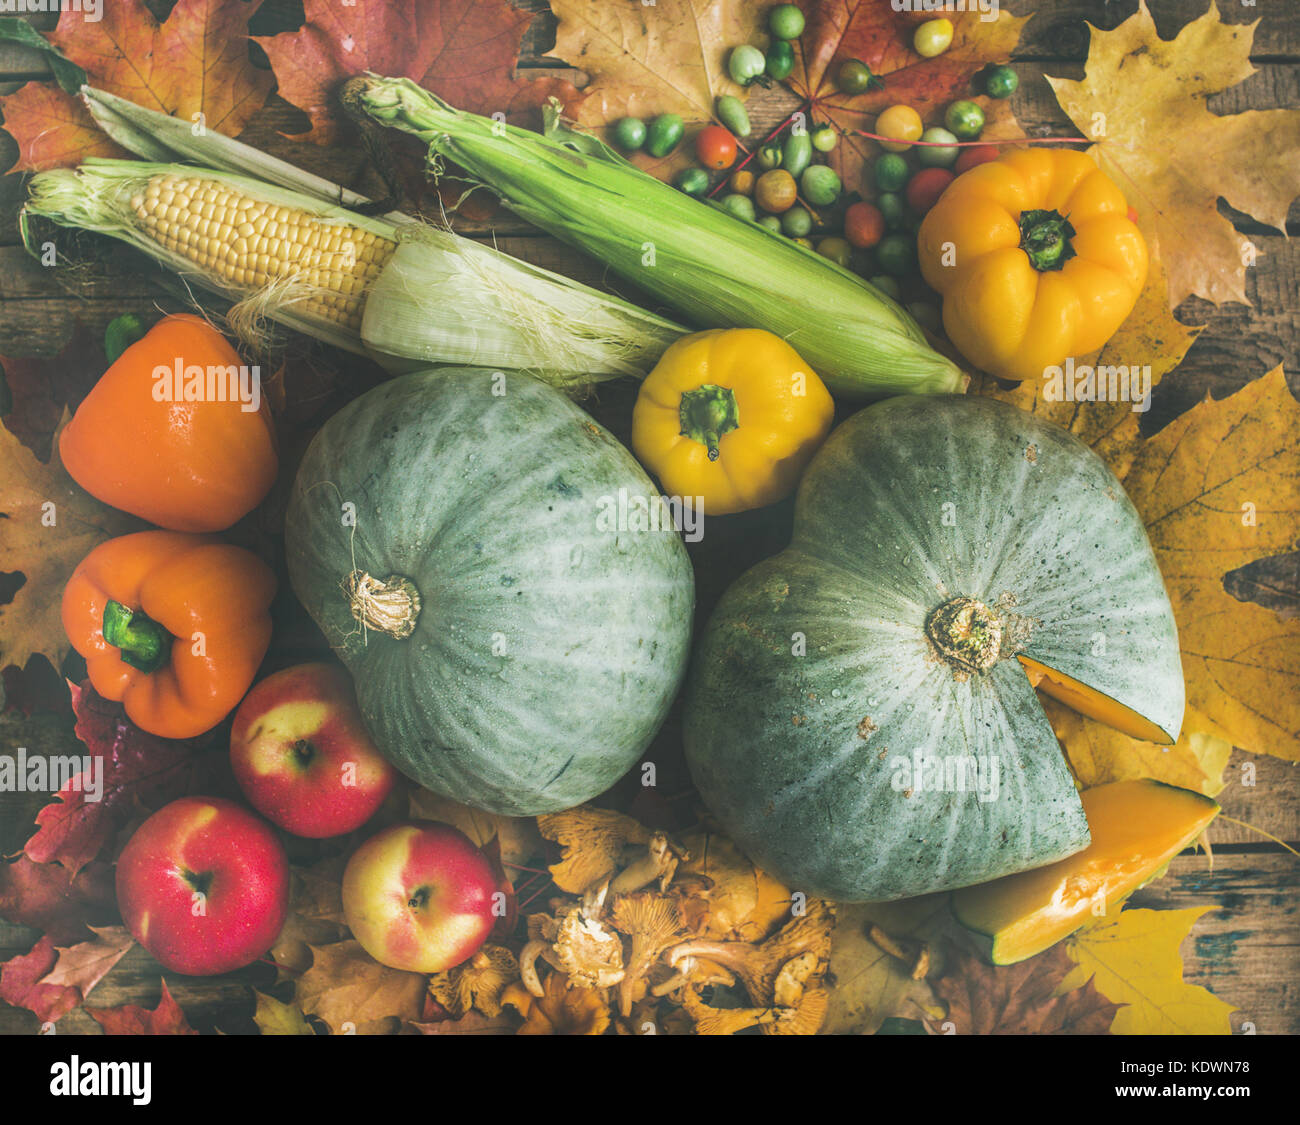 Fall vegetables assortment over wooden table background, top view - Stock Image